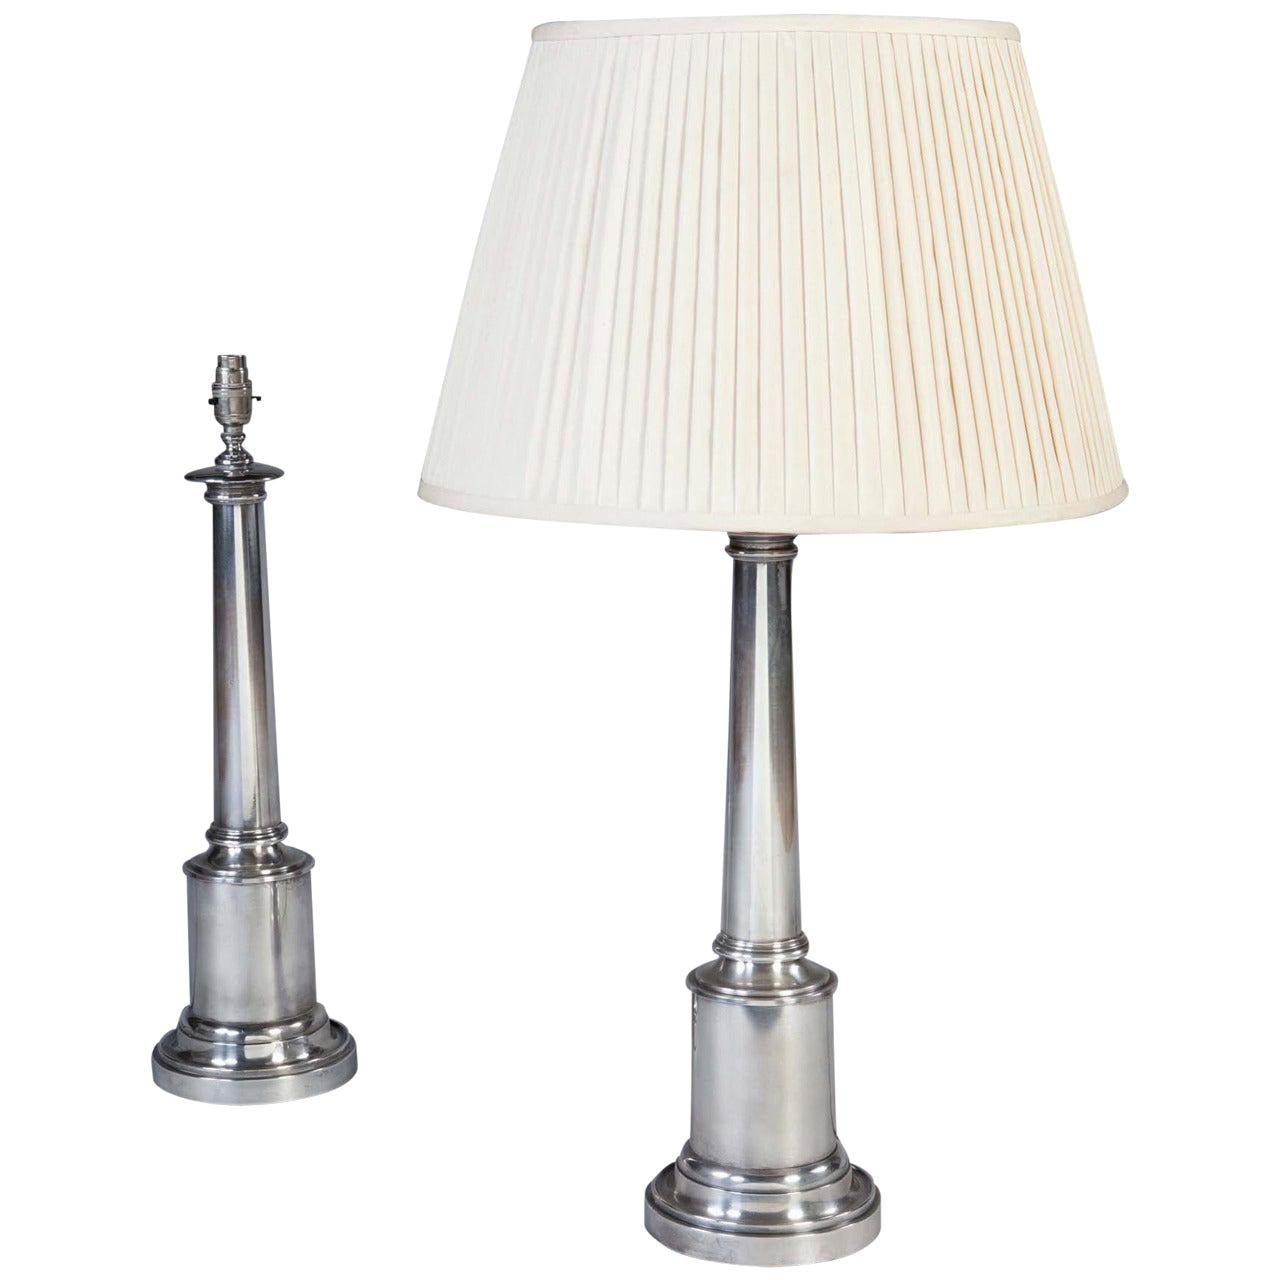 Pair of Silver Plated Column Table Lamps